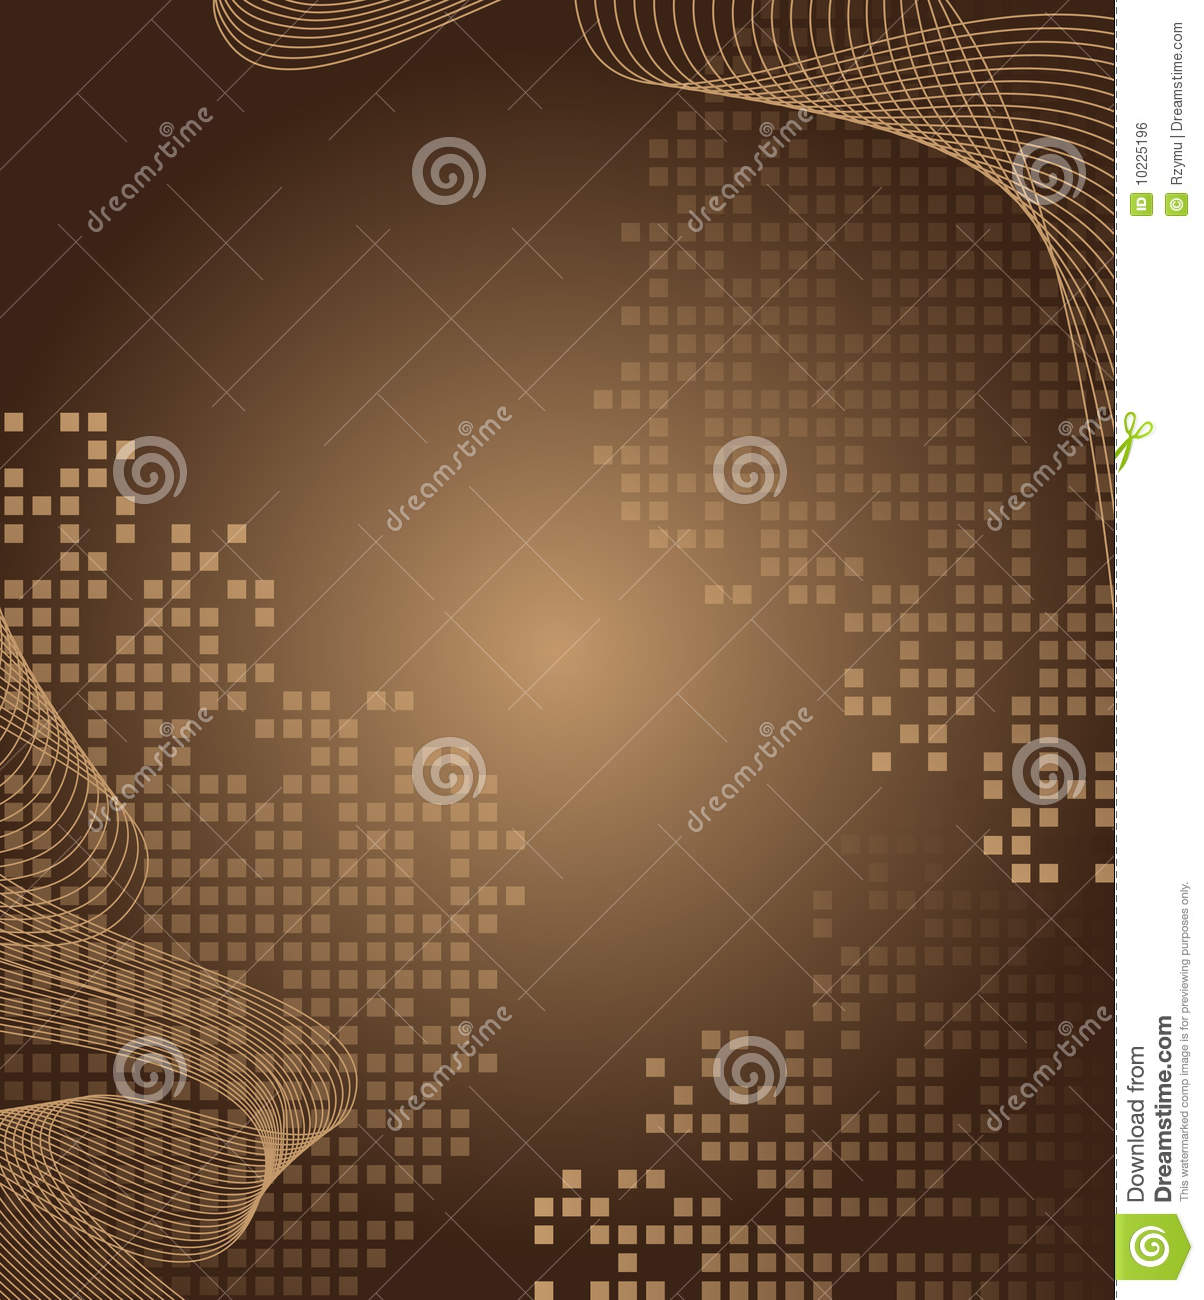 Brown Abstract Background Royalty Free Stock Image